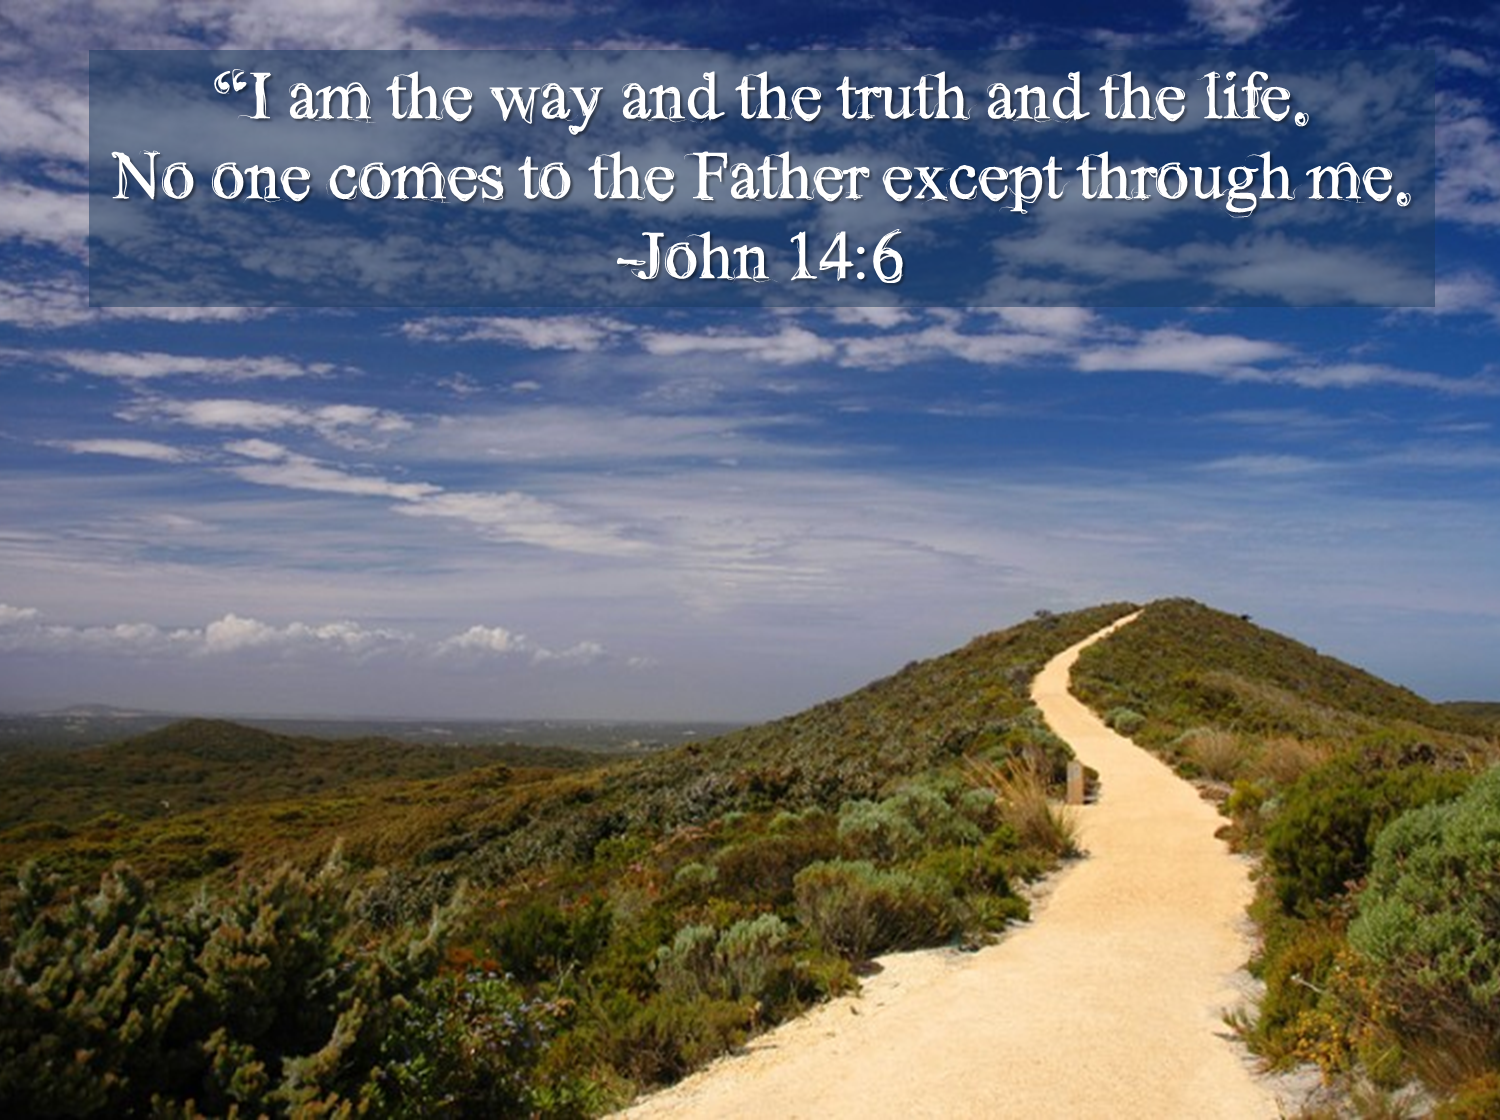 Bildergebnis für i am the way the truth and the life images